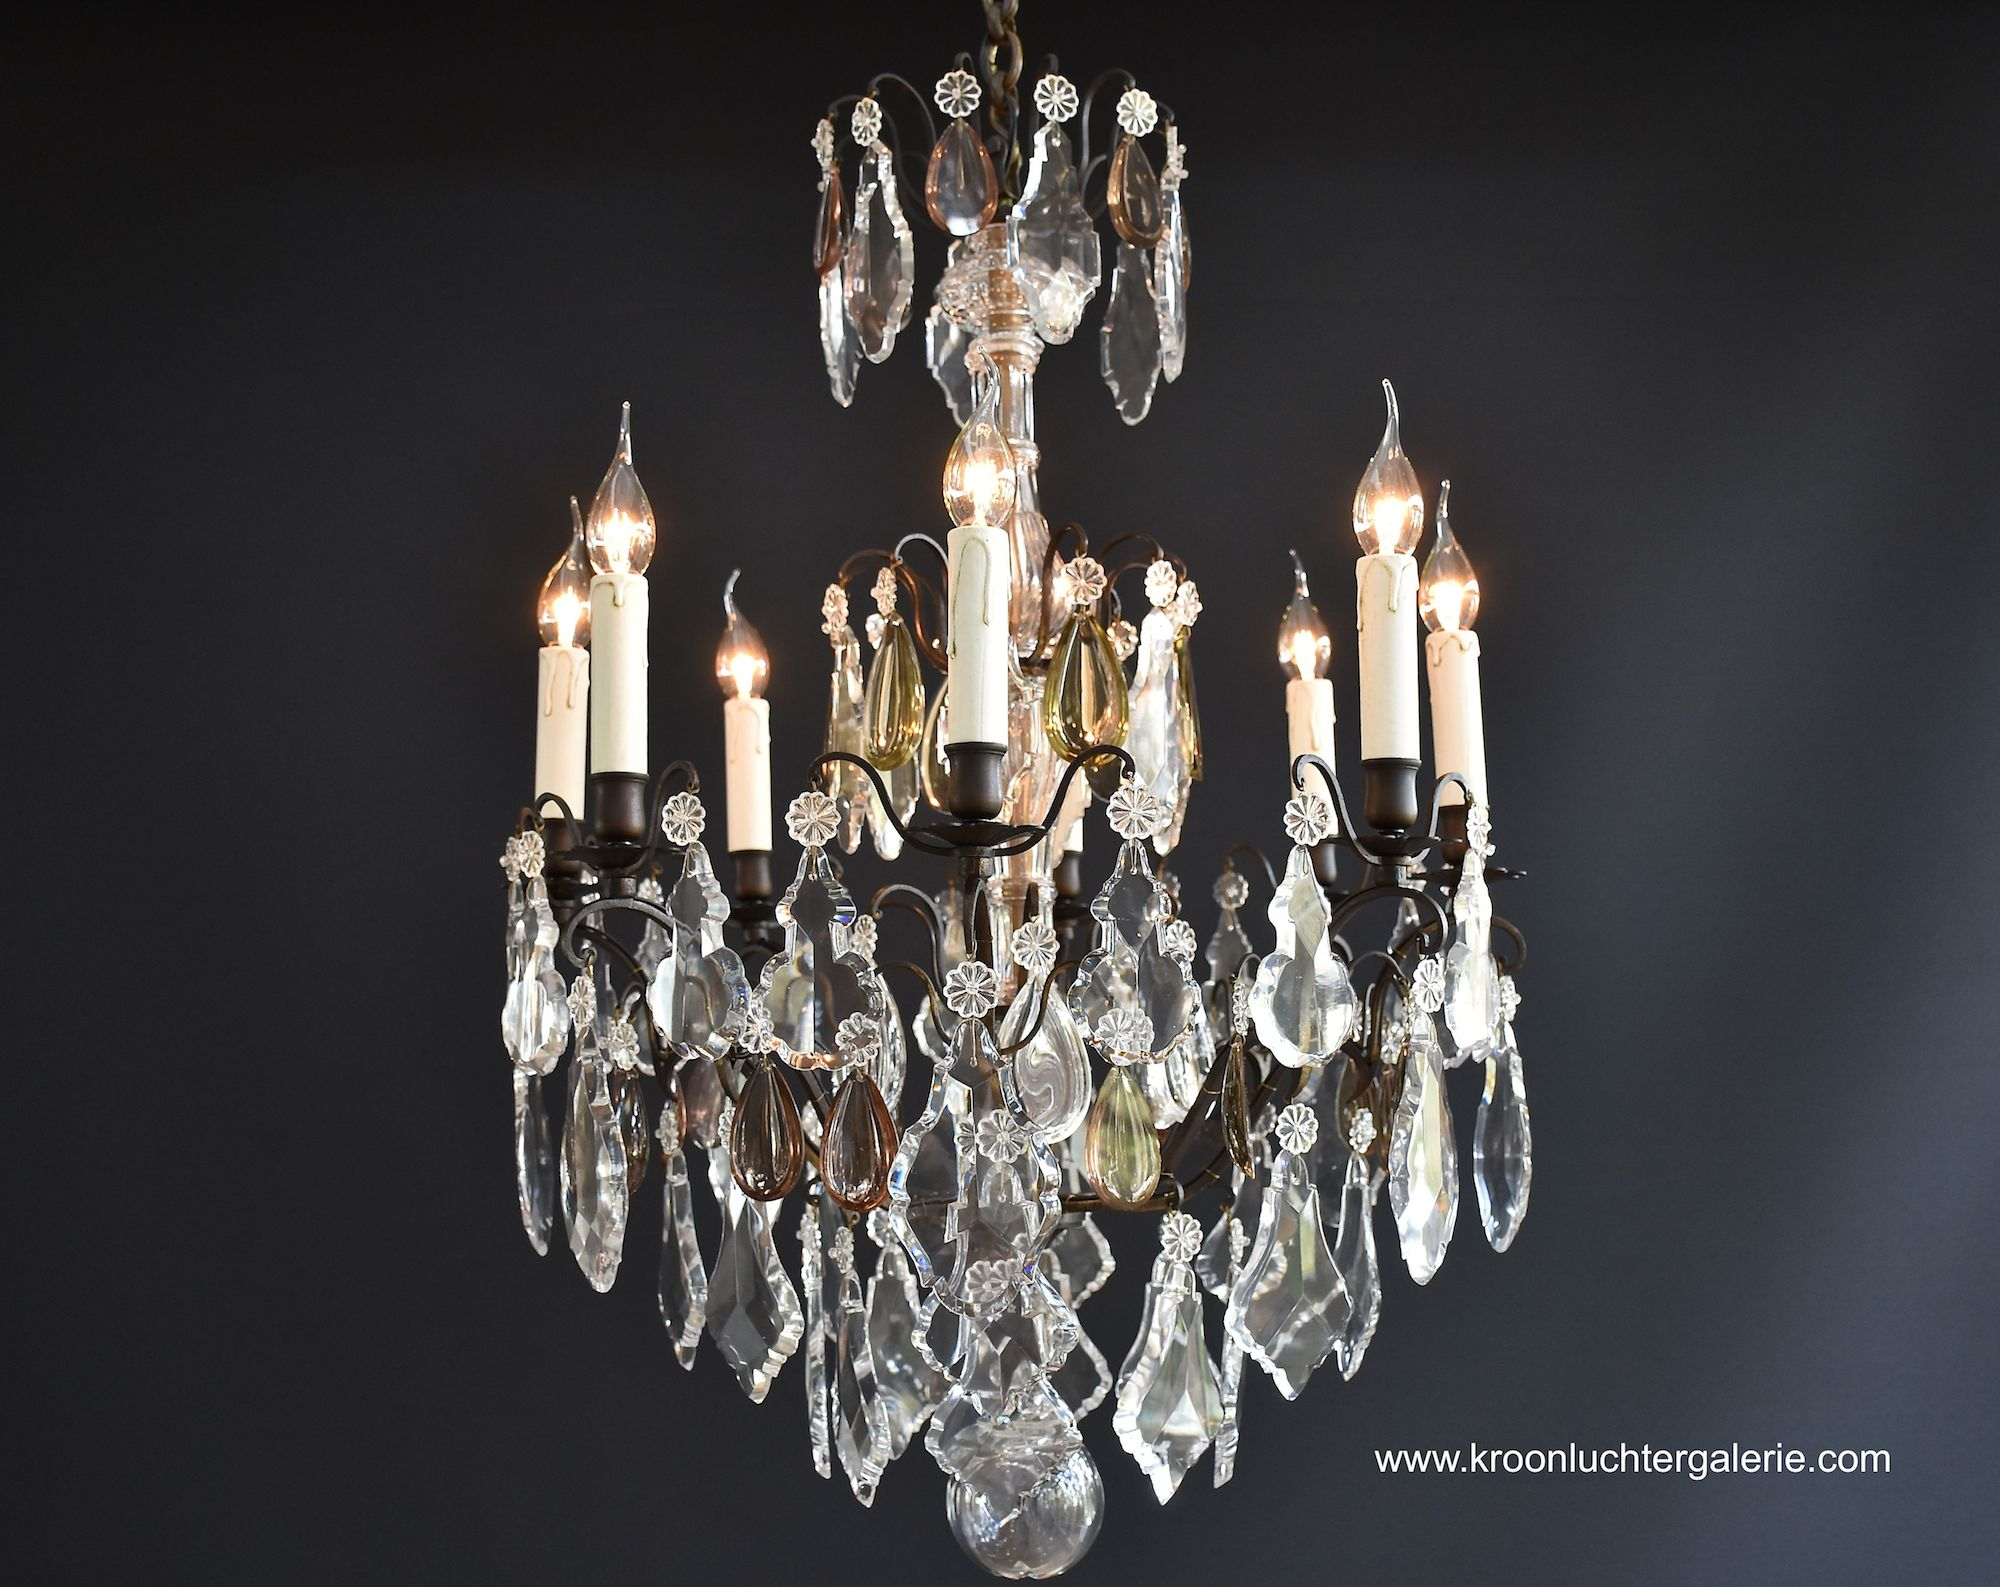 Large French chandelier with Baccarat crystals